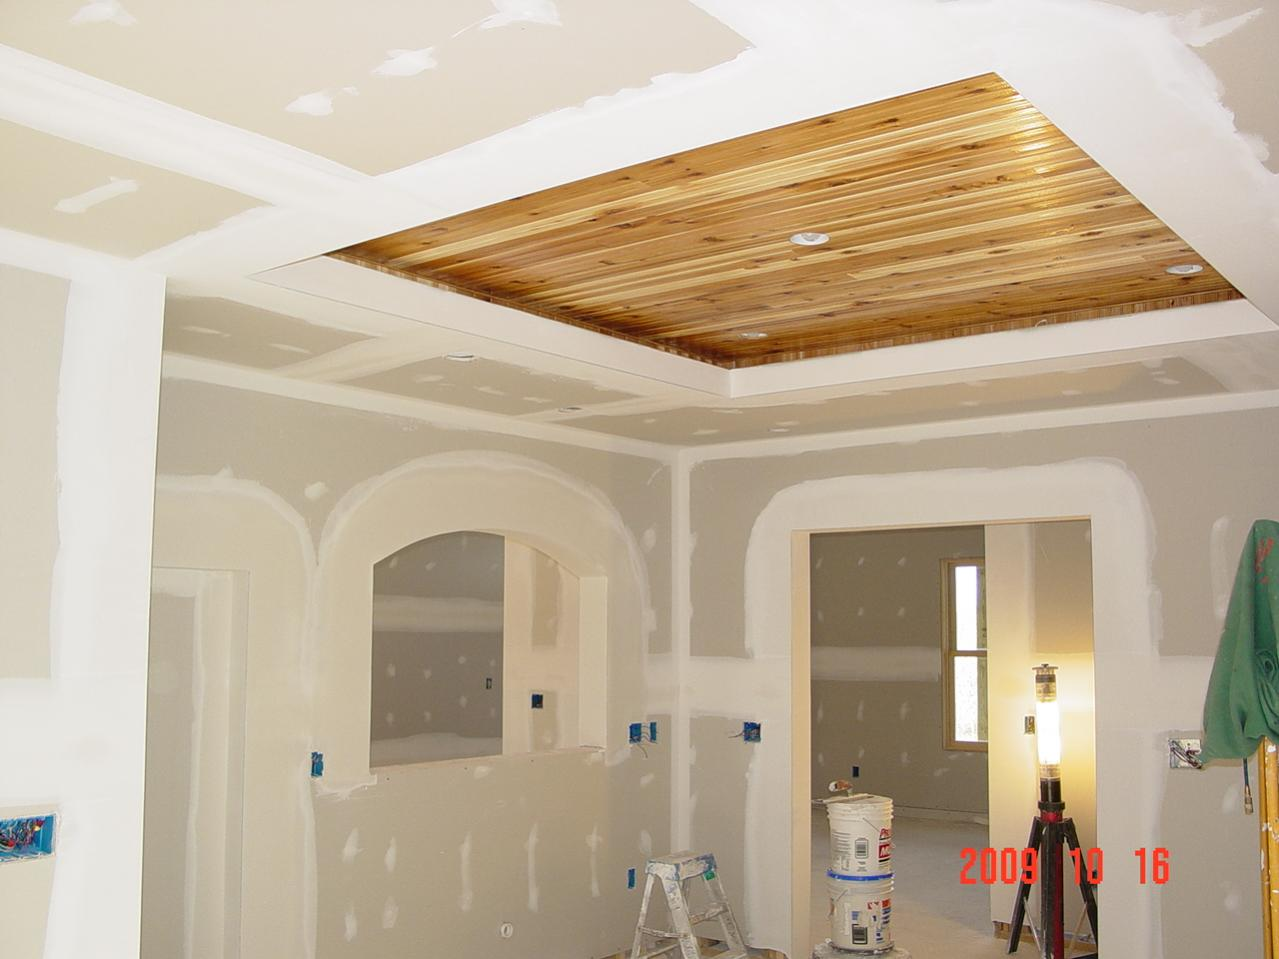 Glamorous 50+ Dry Wall Art Inspiration Of Drywall Worker Creates ...